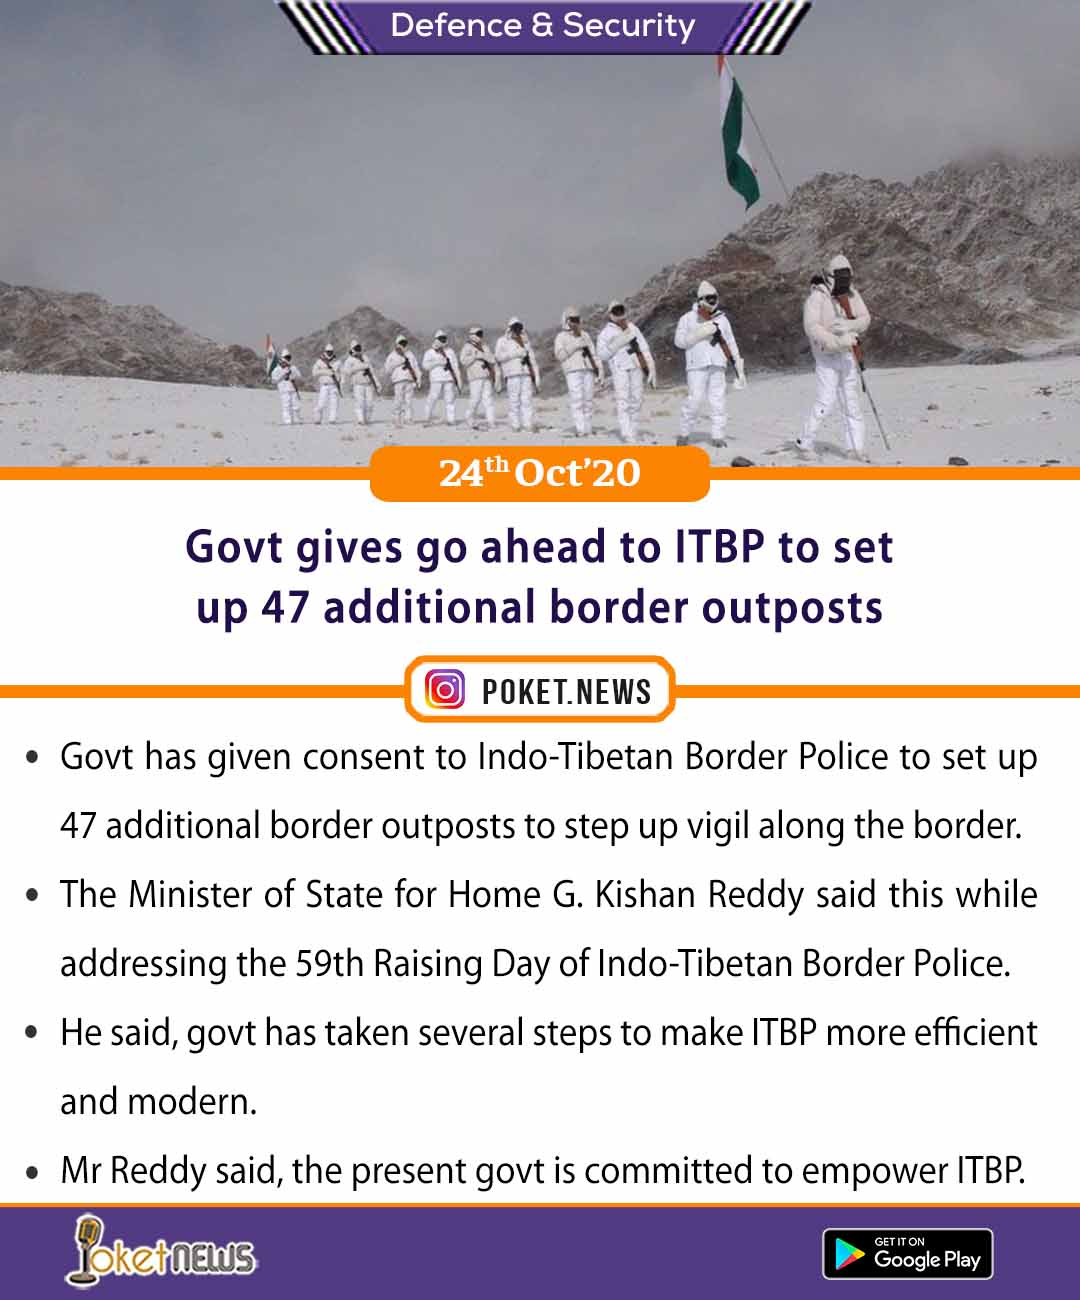 Govt gives go ahead to ITBP to set up 47 additional border outposts